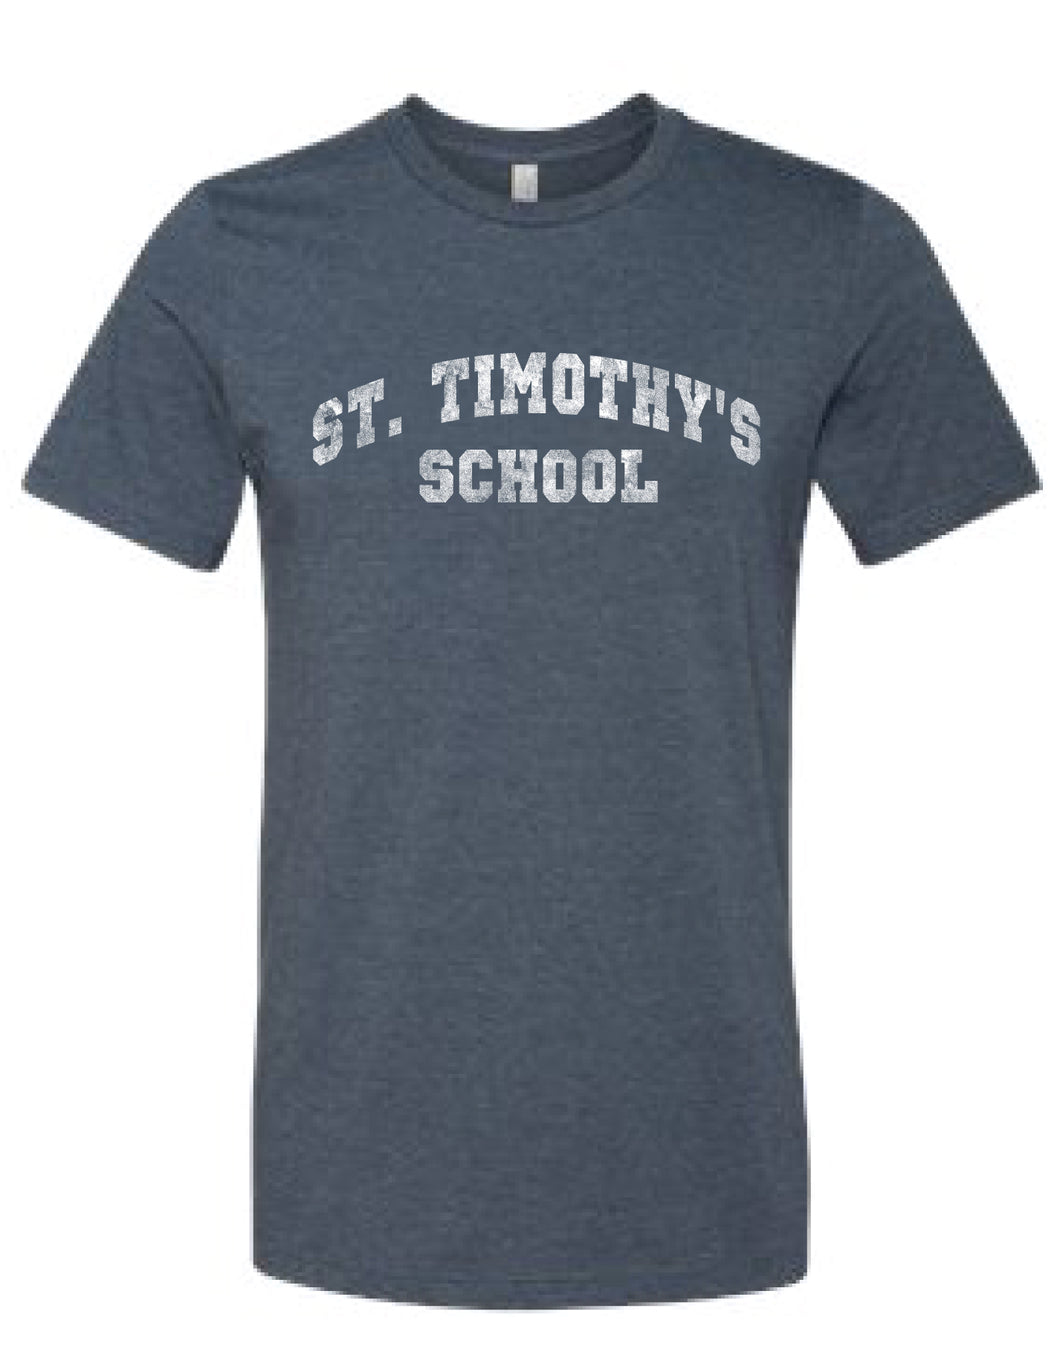 Old School St. Timothy's School Shirt